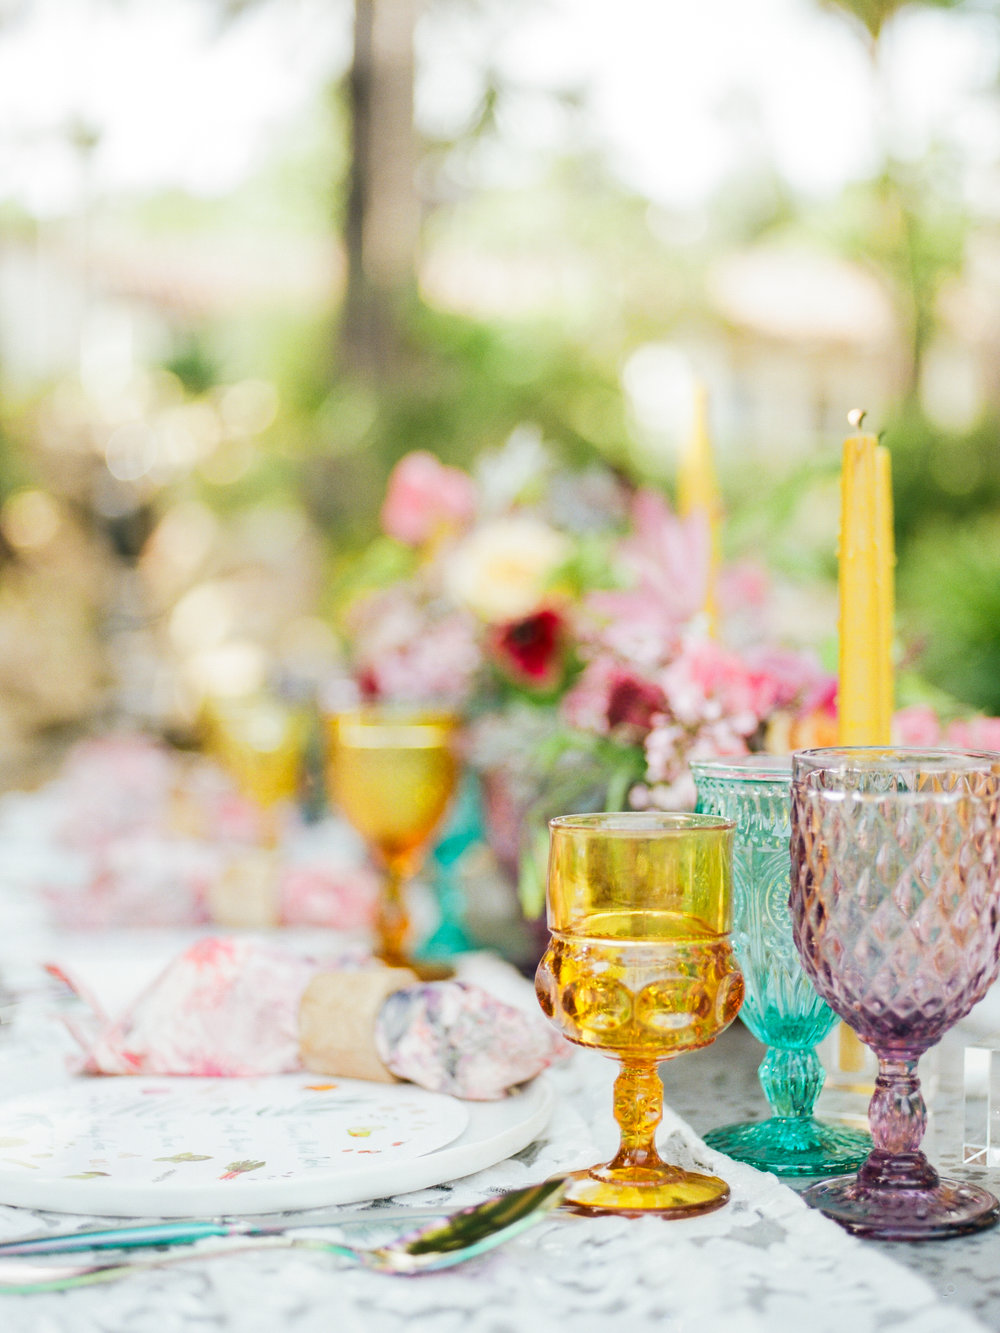 Anna Delores Photography_Wild Heart Events 05.16.17-694380120015.jpg